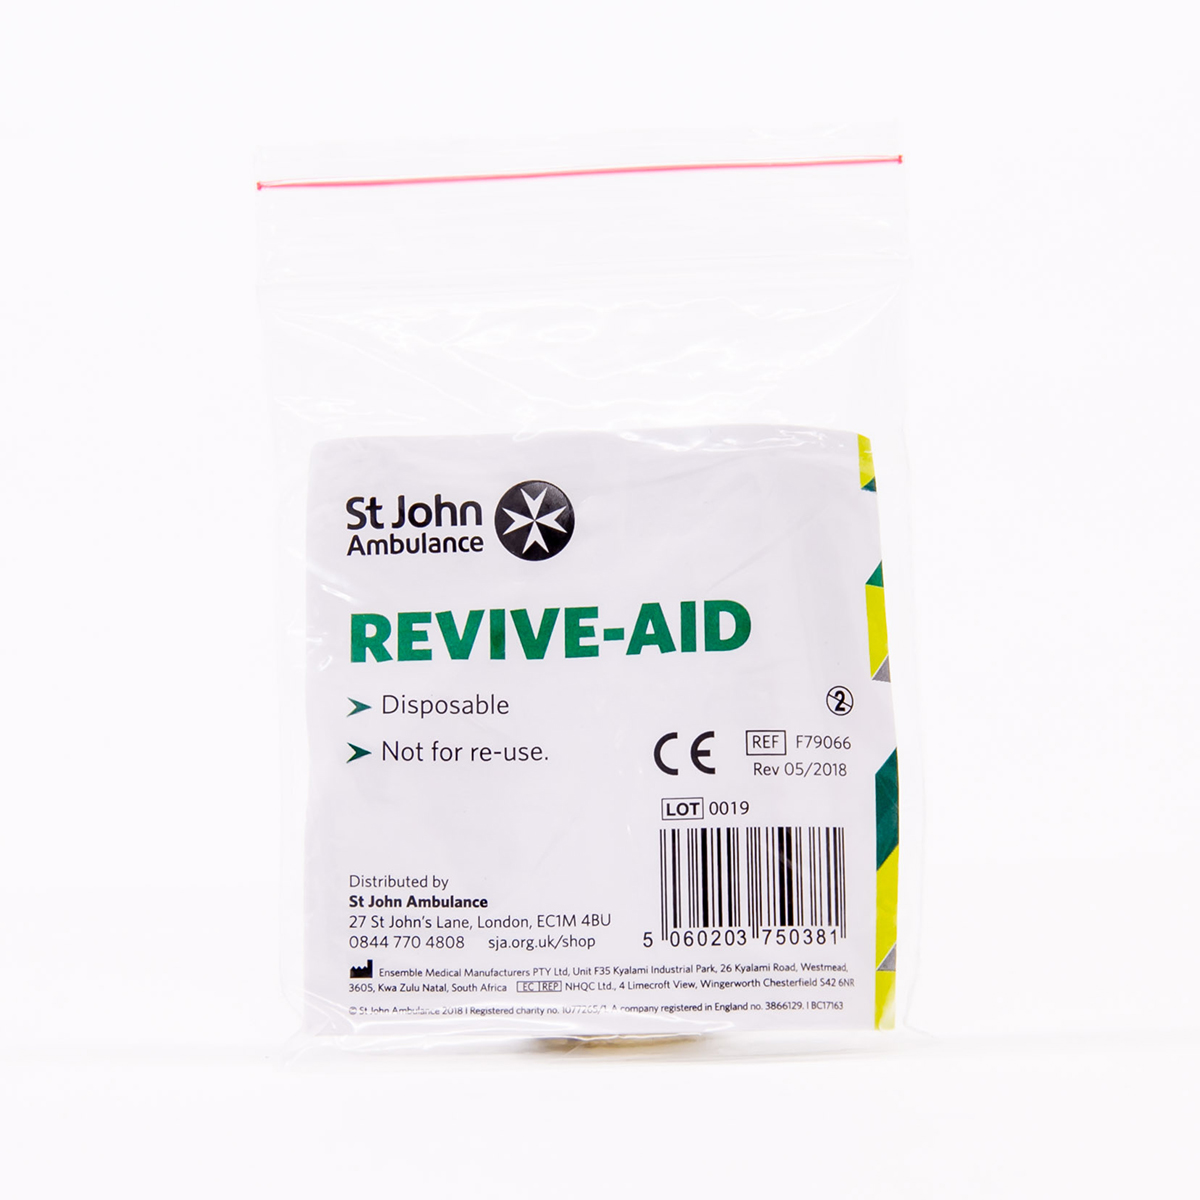 St John Ambulance Revive-Aid Face Shield